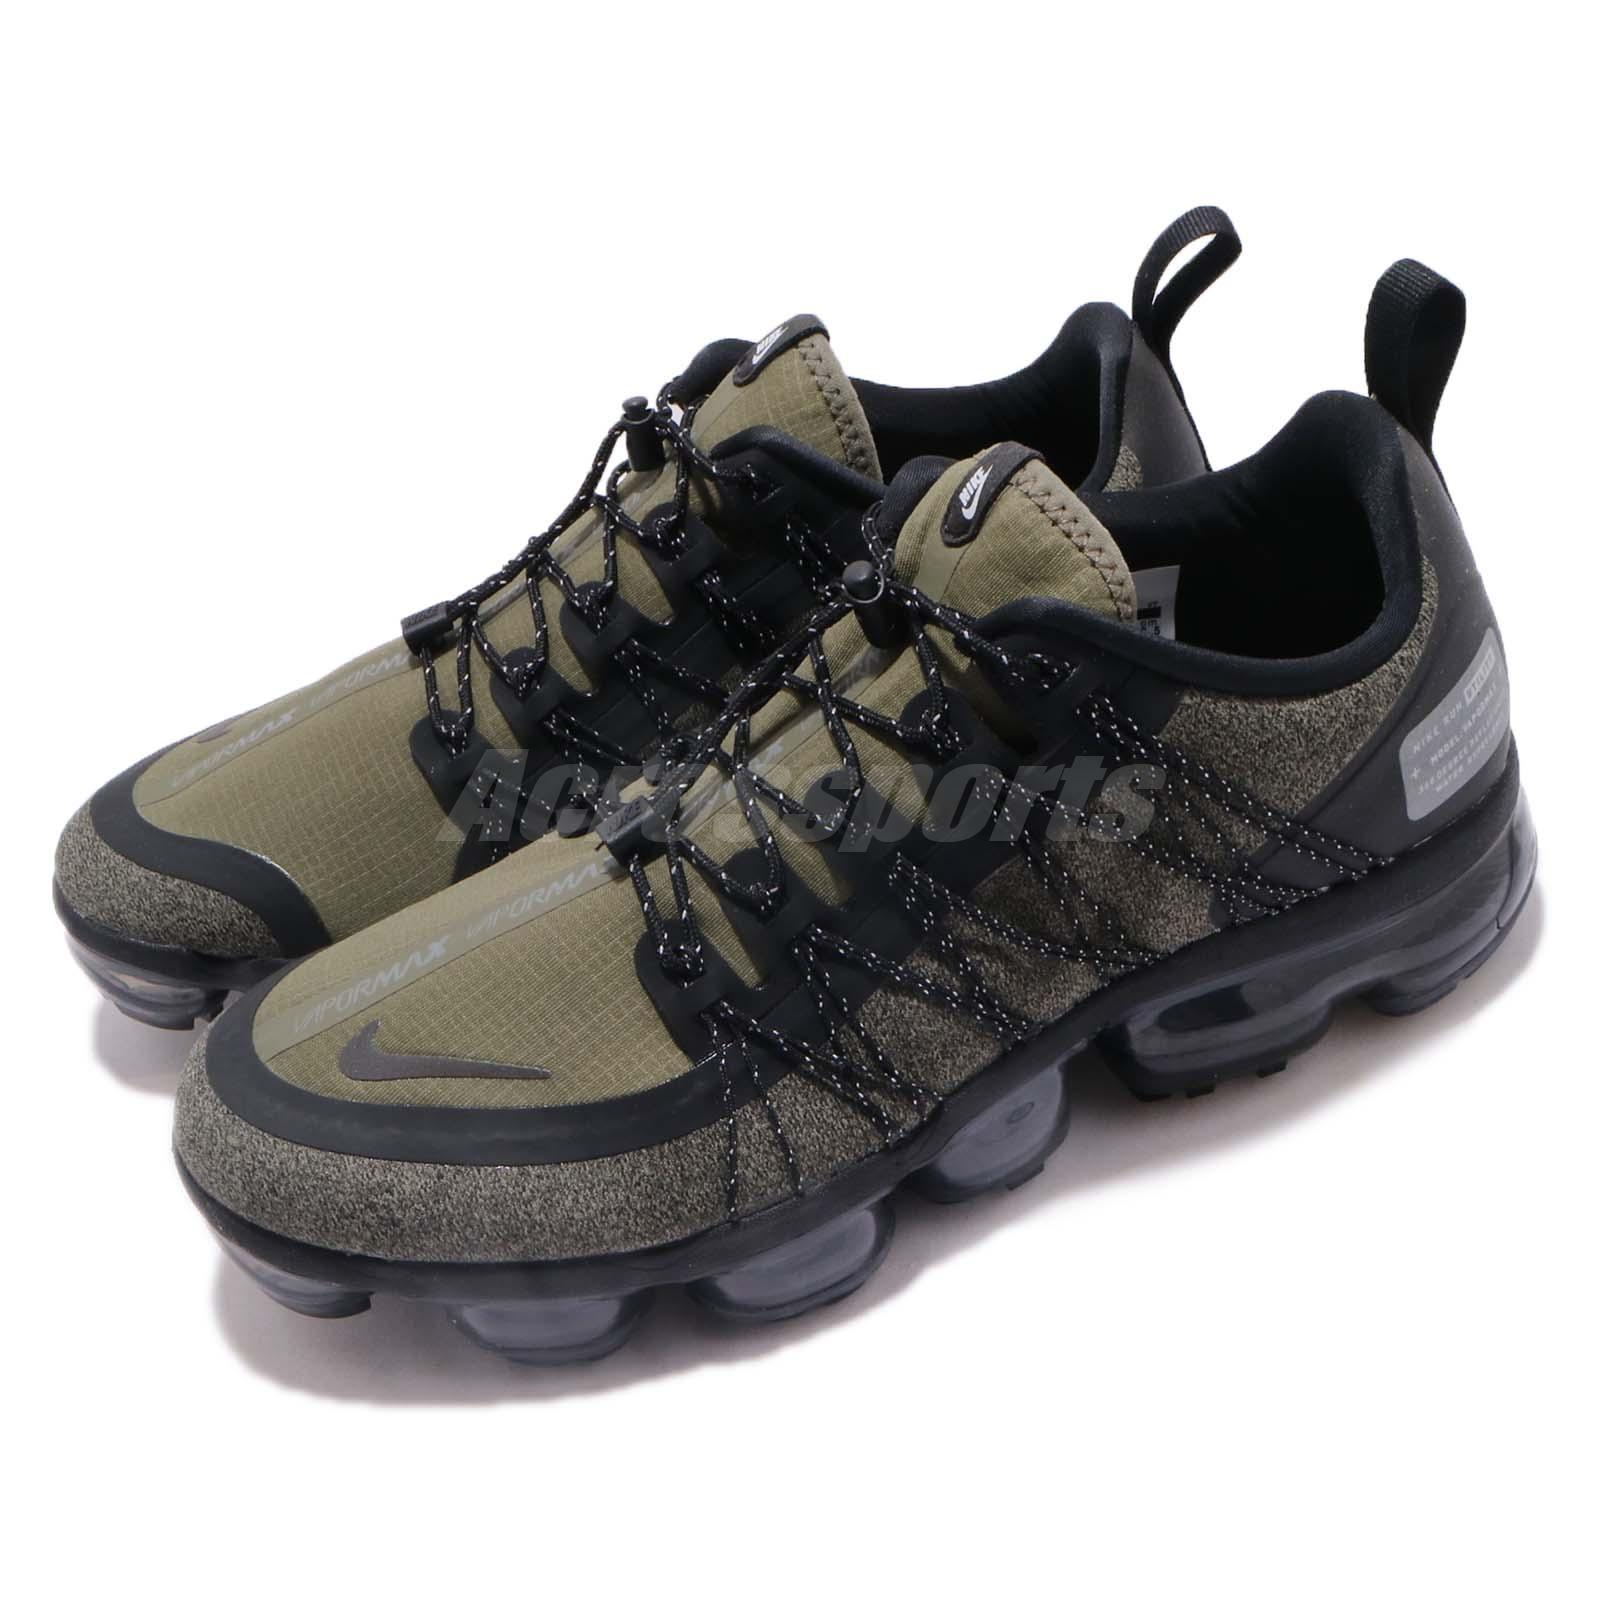 huge selection of ae24f 212dd Details about Nike Air Vapormax Run Utility Medium Olive Green Mens Running  Shoes AQ8810-201